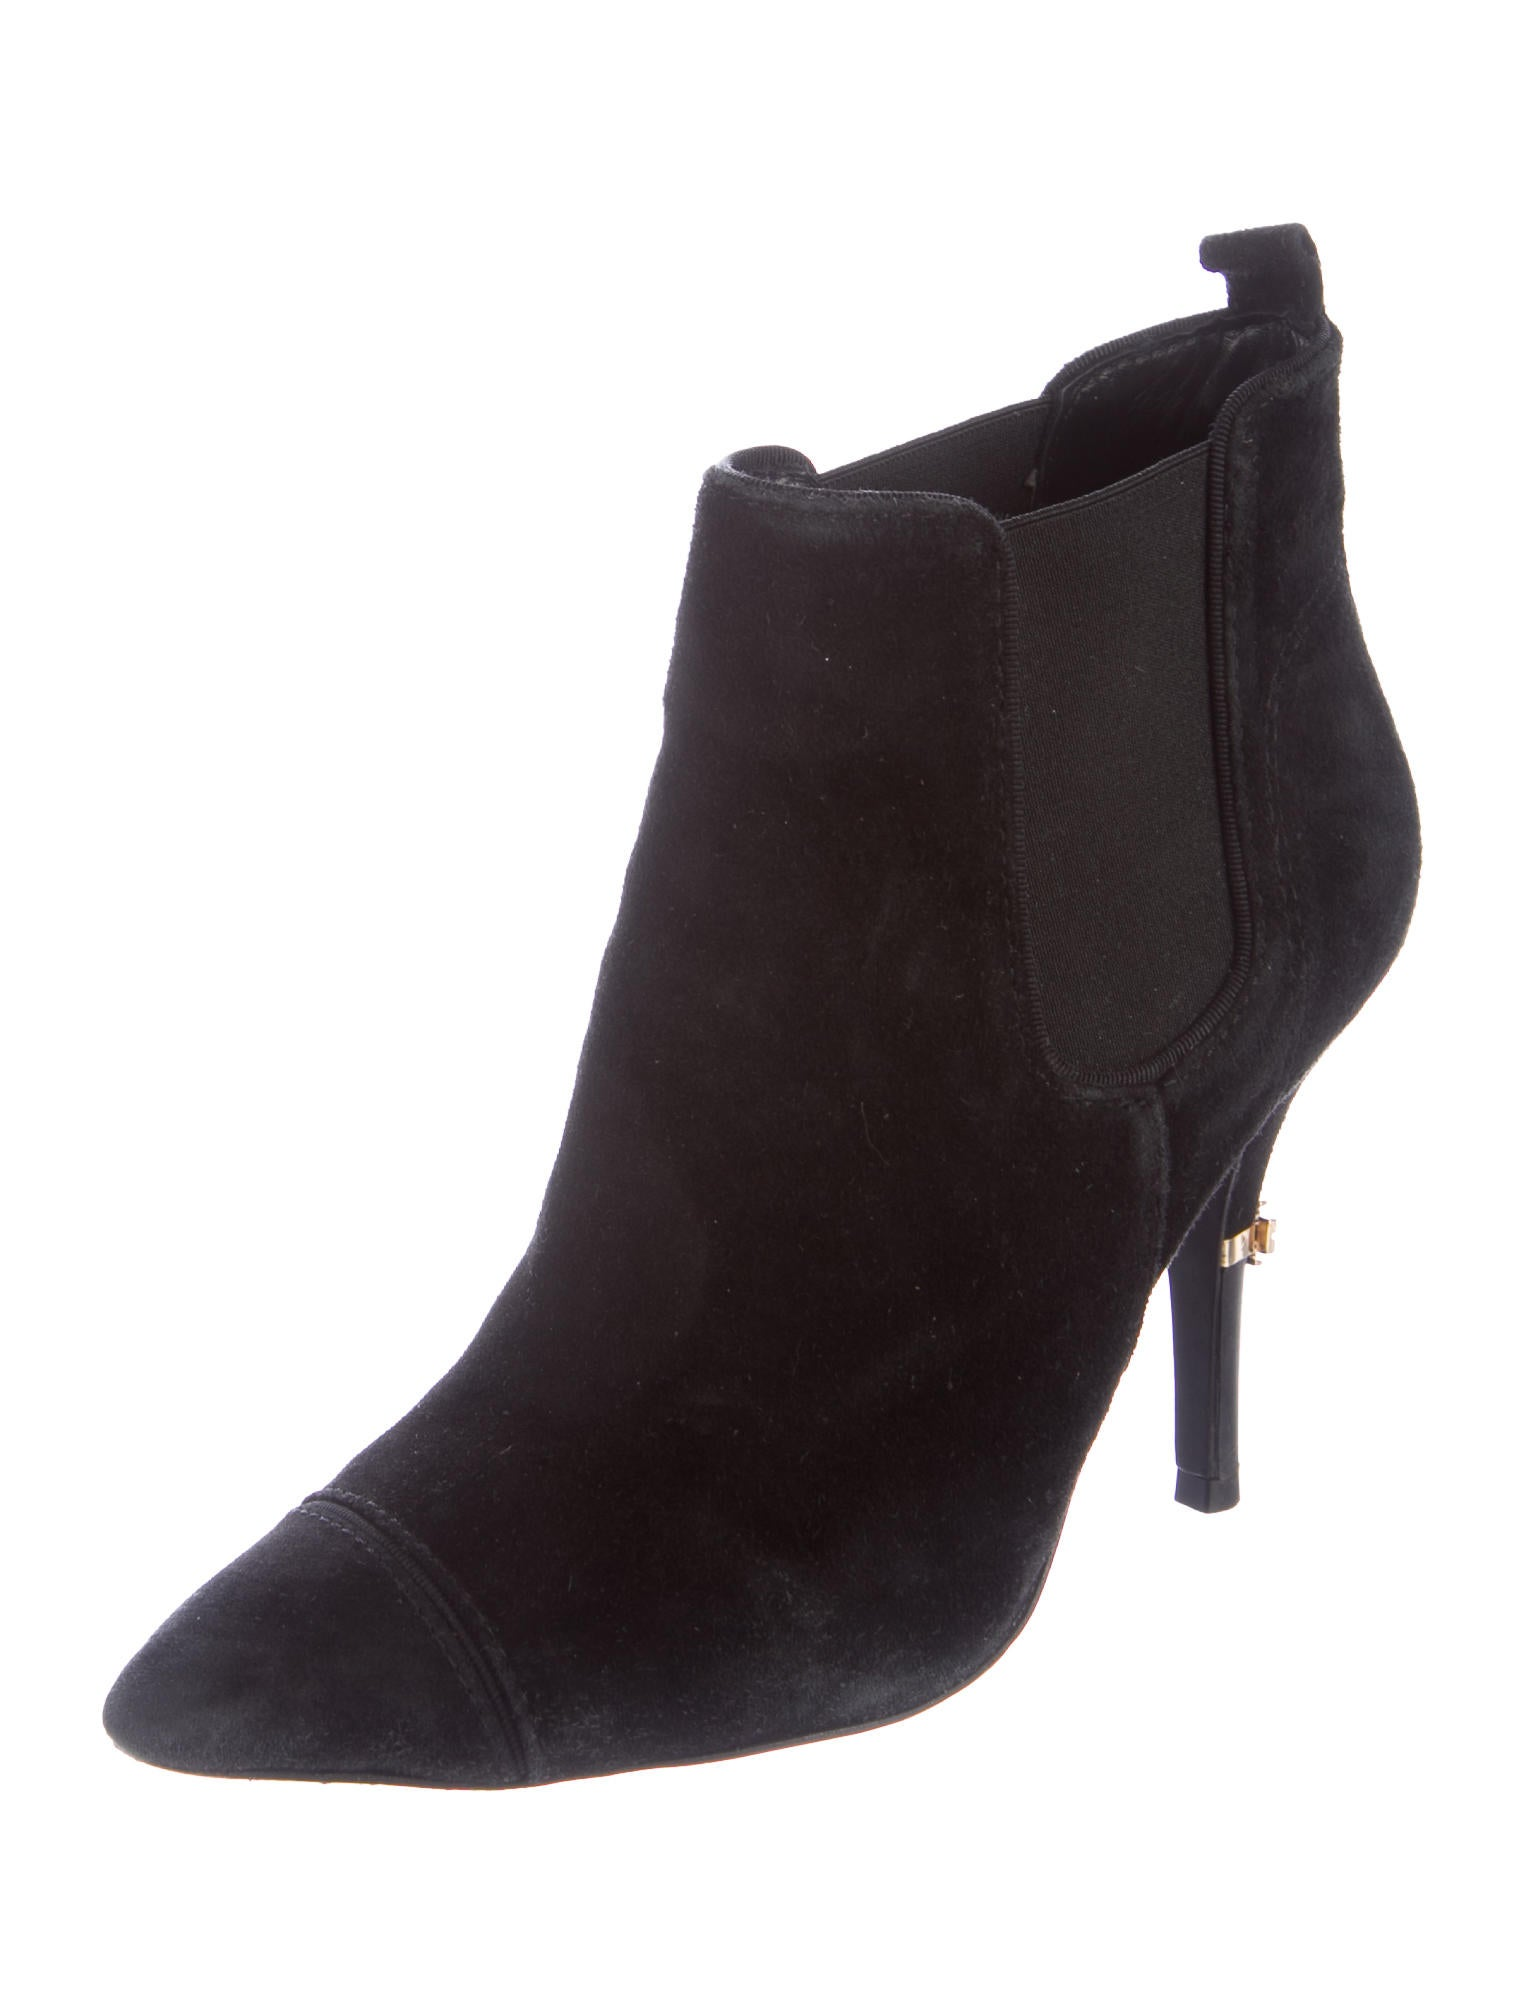 burch suede ankle boots shoes wto104981 the